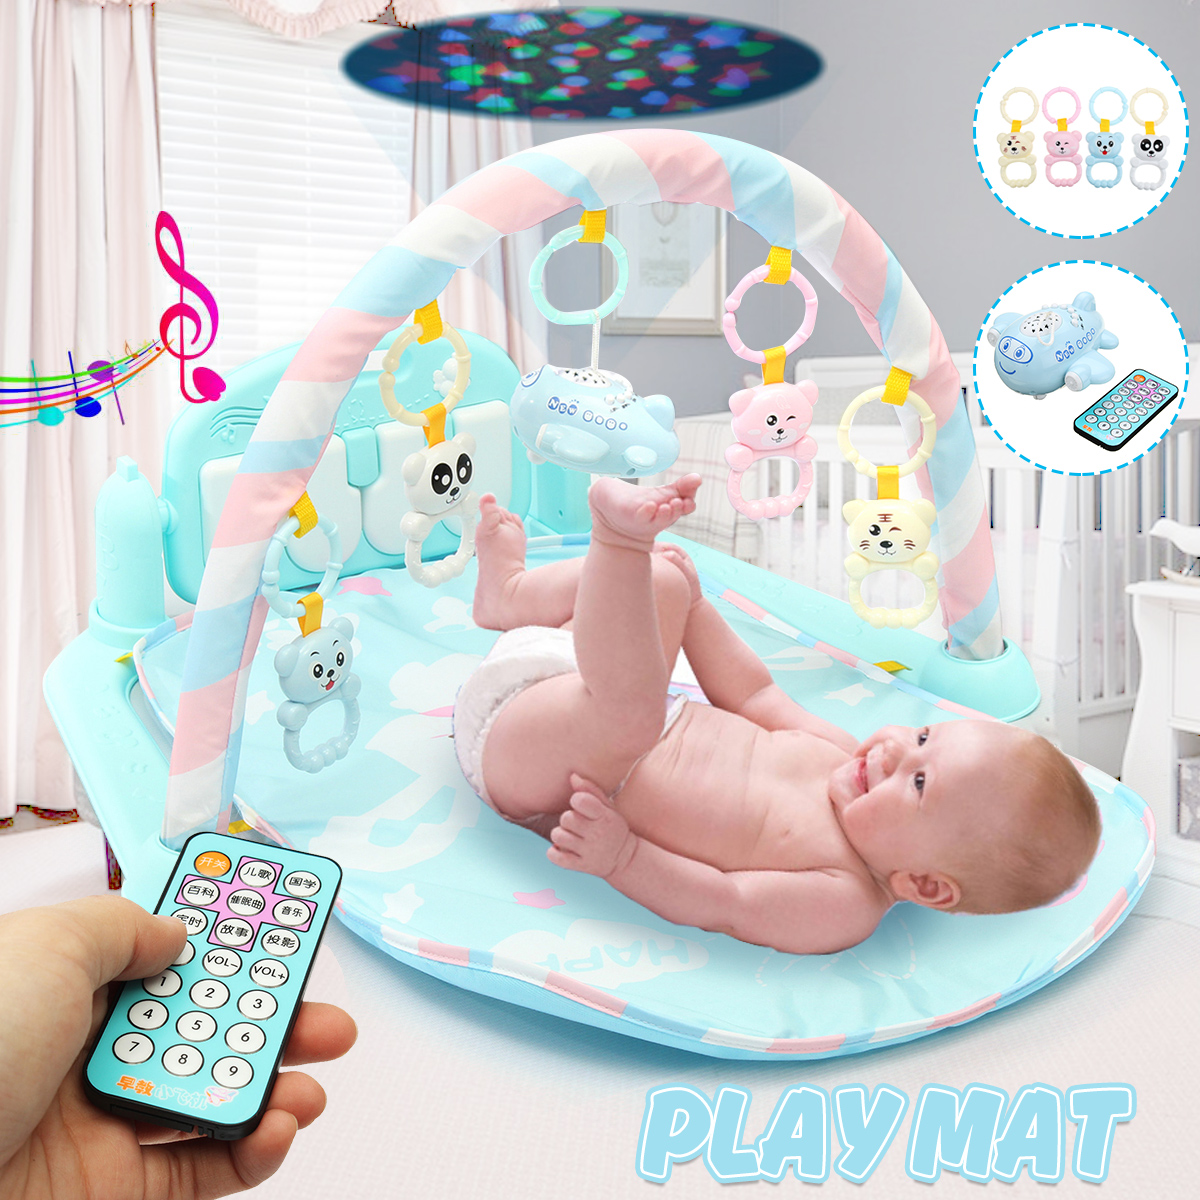 How To Play Newborn On Piano Us 13 8 Music Baby Play Mat Gym 3 In1 Newborn Infant Baby Musical Piano Play Mat Blanket Kids Activity Carpet Crawling Mat Kids Mat In Play Mats